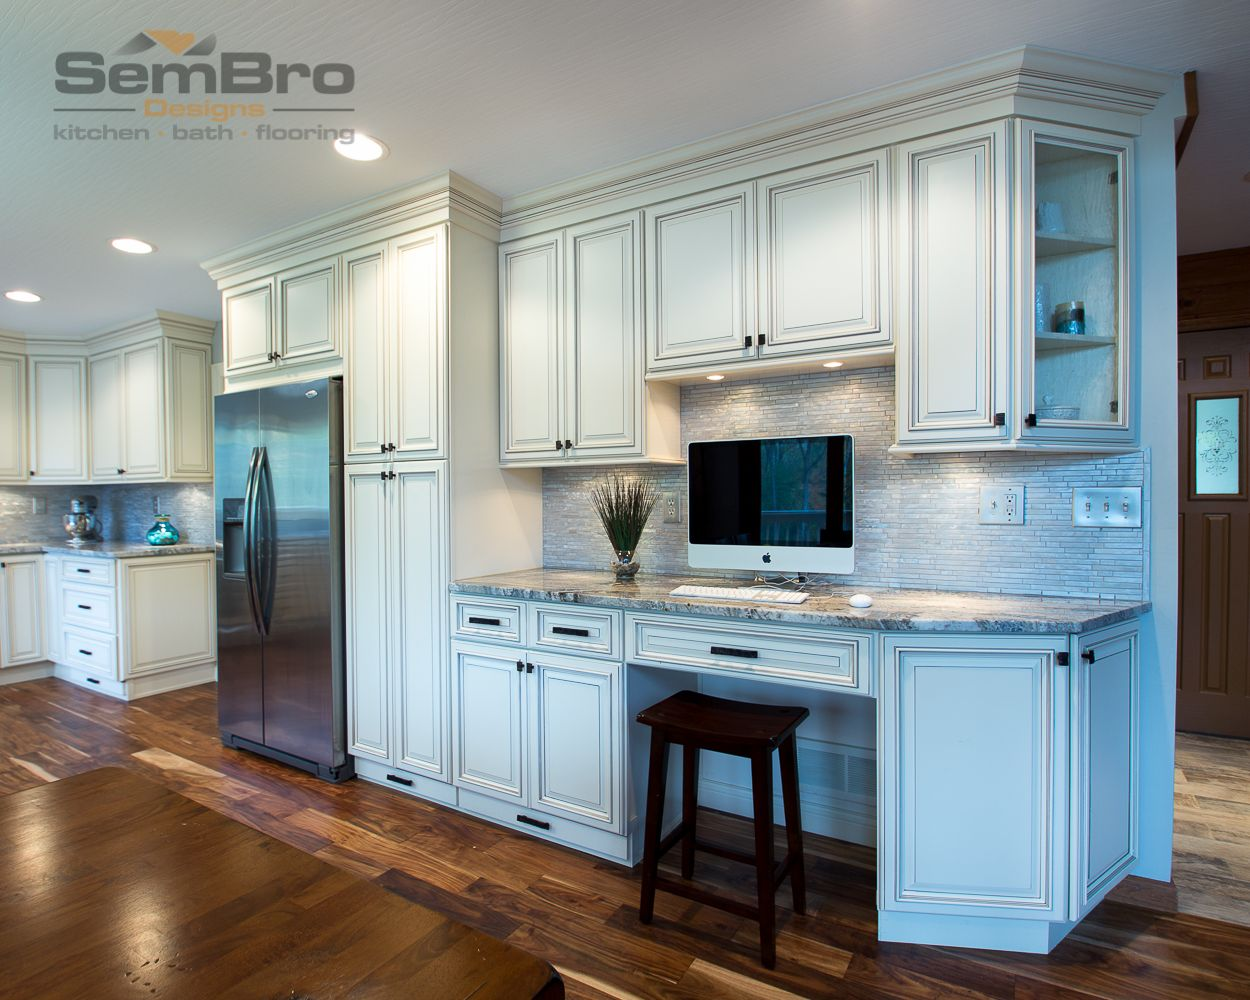 home remodeling in columbus oh sembro designs